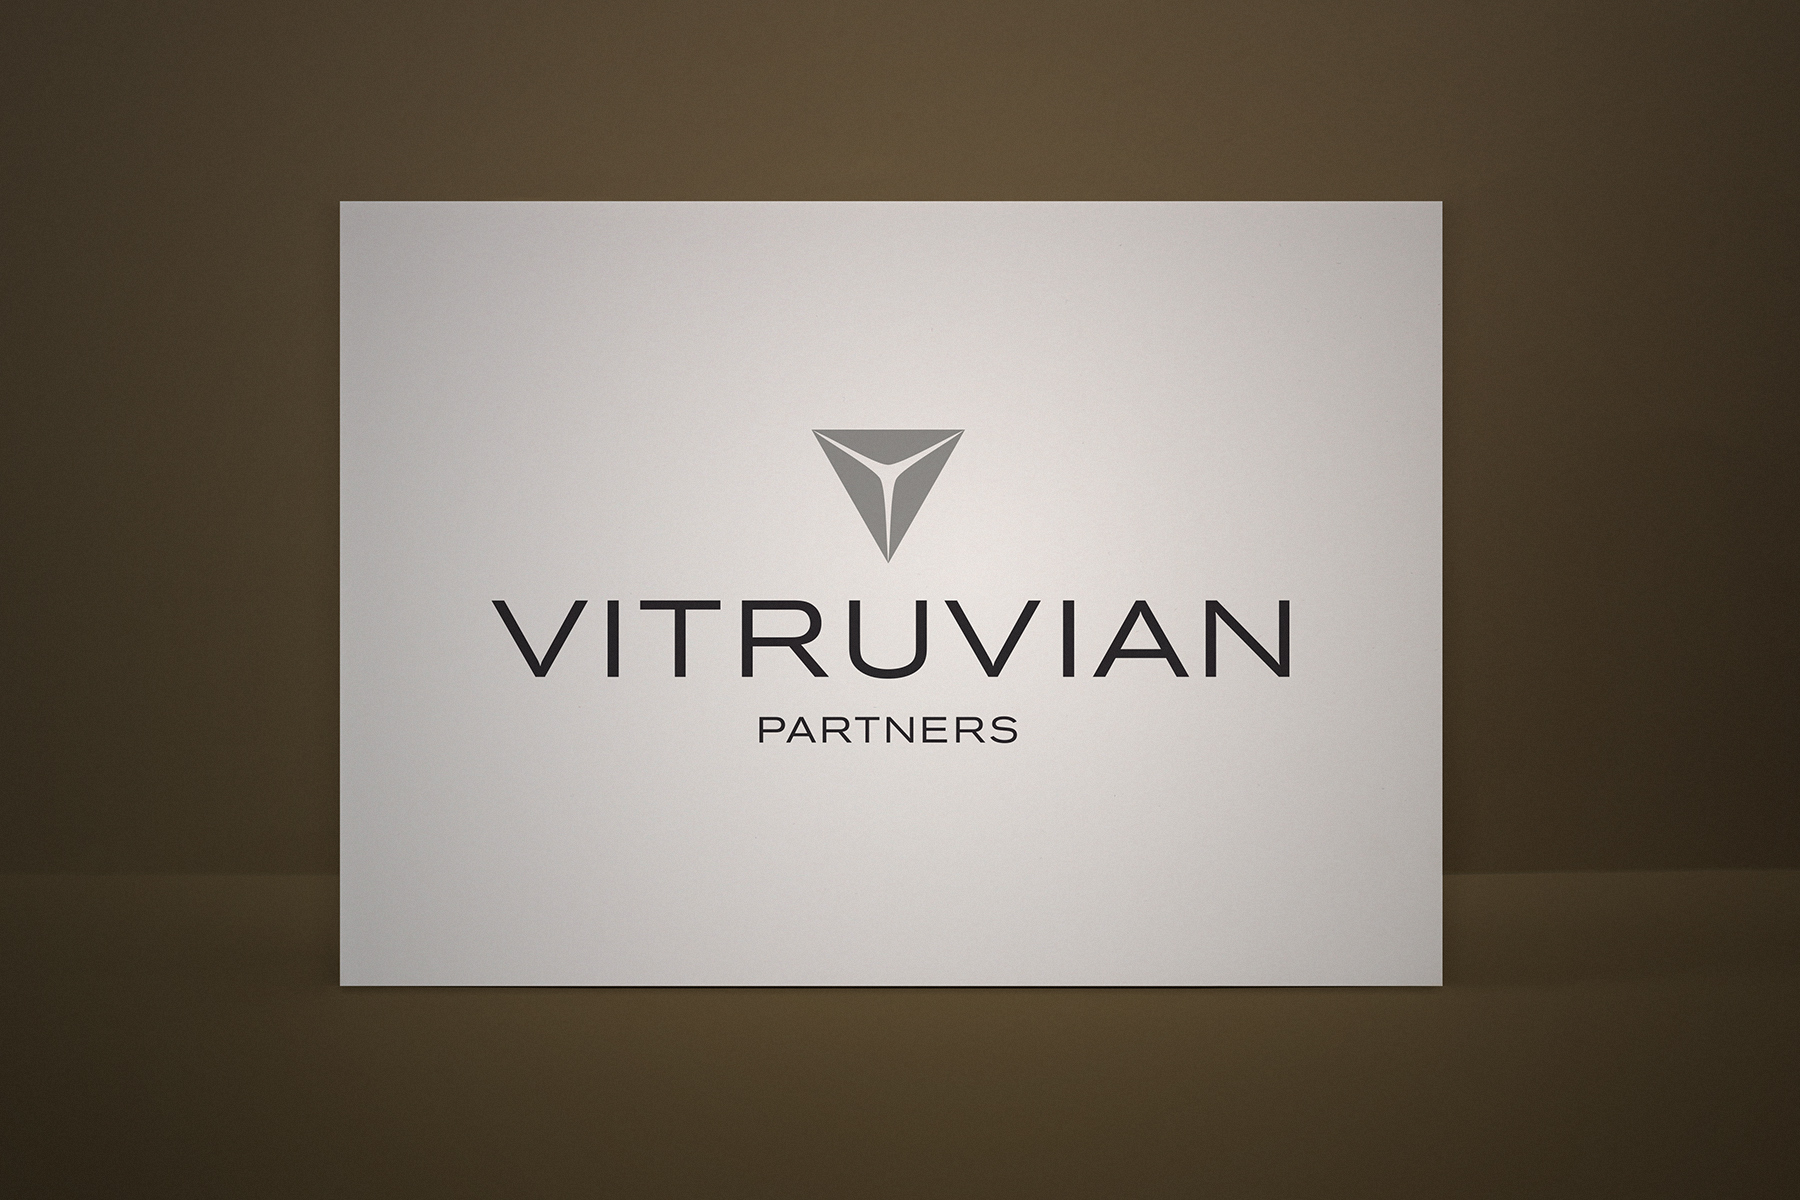 The final Vitruvian logo and icon conveys a formal yet intriguing brand spirit.